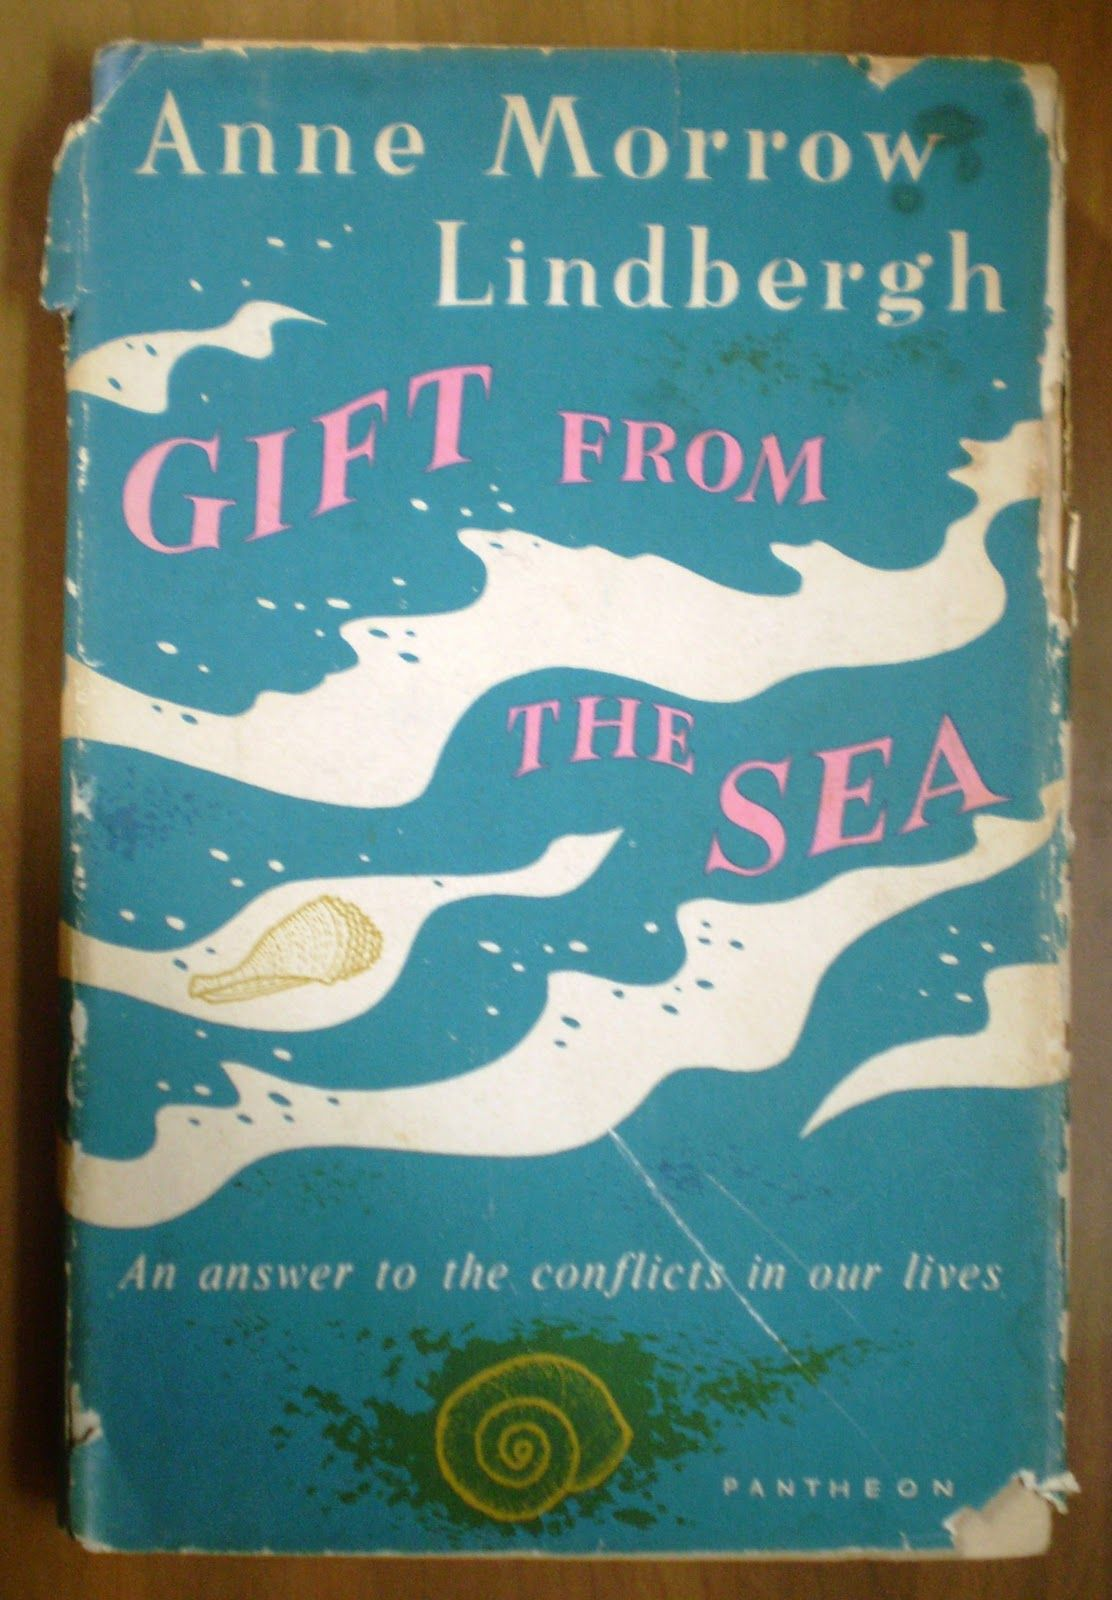 Gift from the sea by anne morrow lindbergh one of the